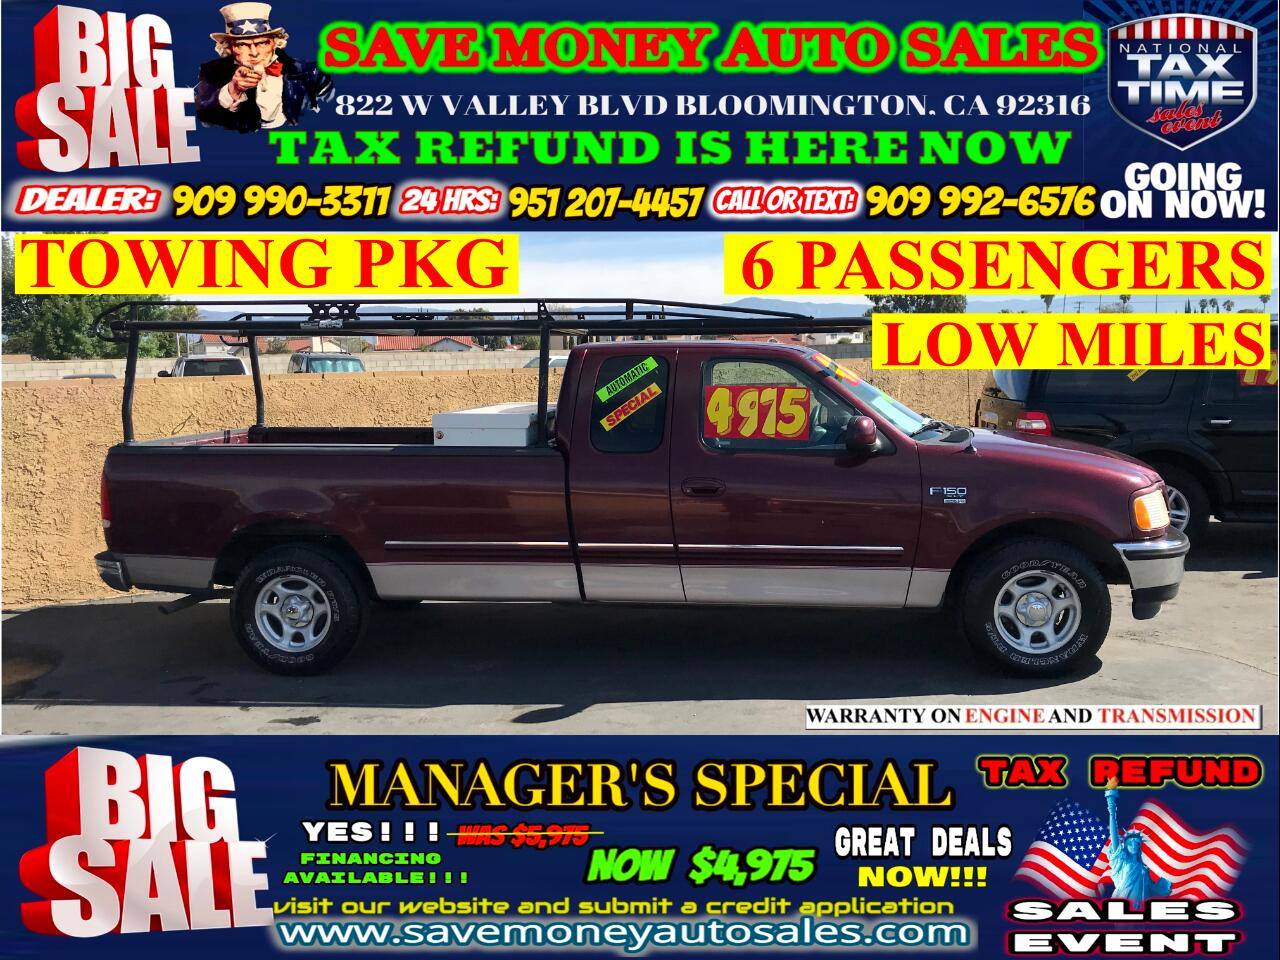 1998 Ford F-150 XL SUPERCAB>6 PASSENGER>LOW MILES>TOWING PKG